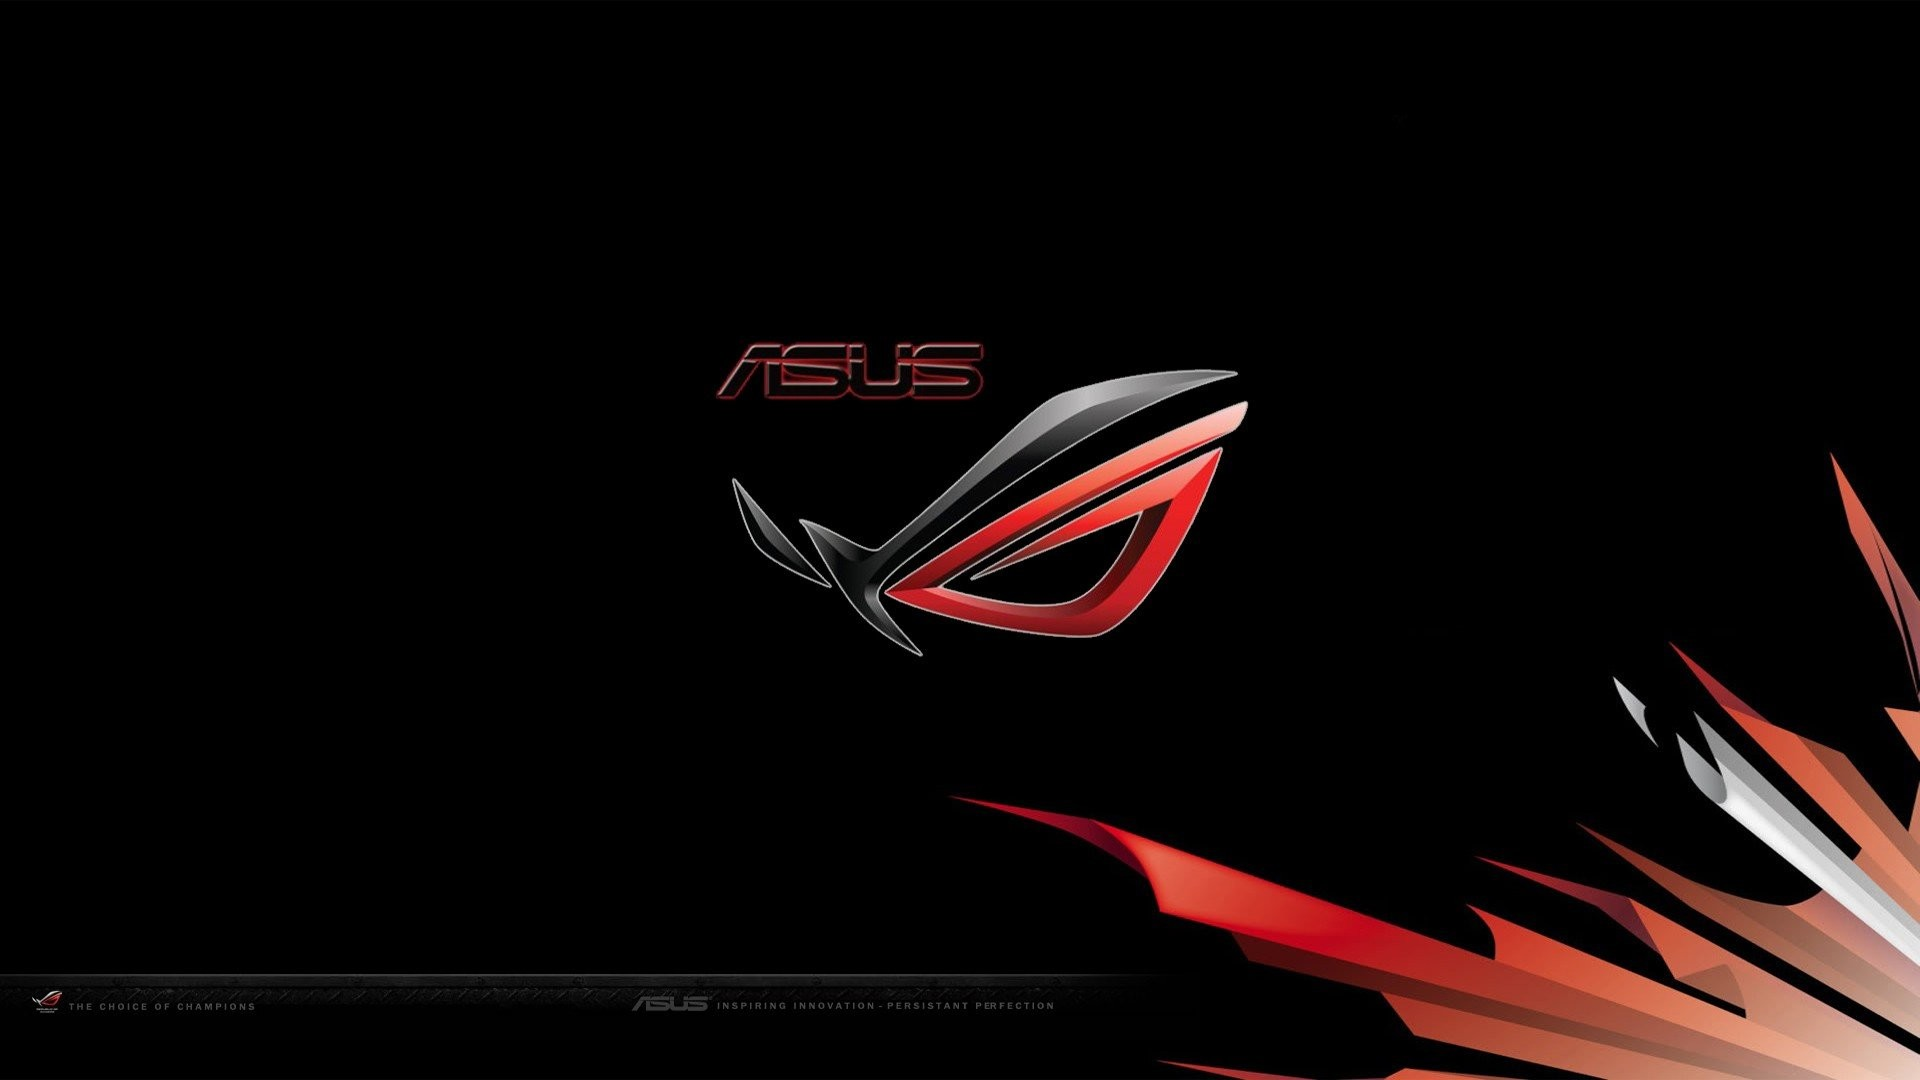 Cool Asus Wallpapers Hd Pictures to Pin on Pinterest .